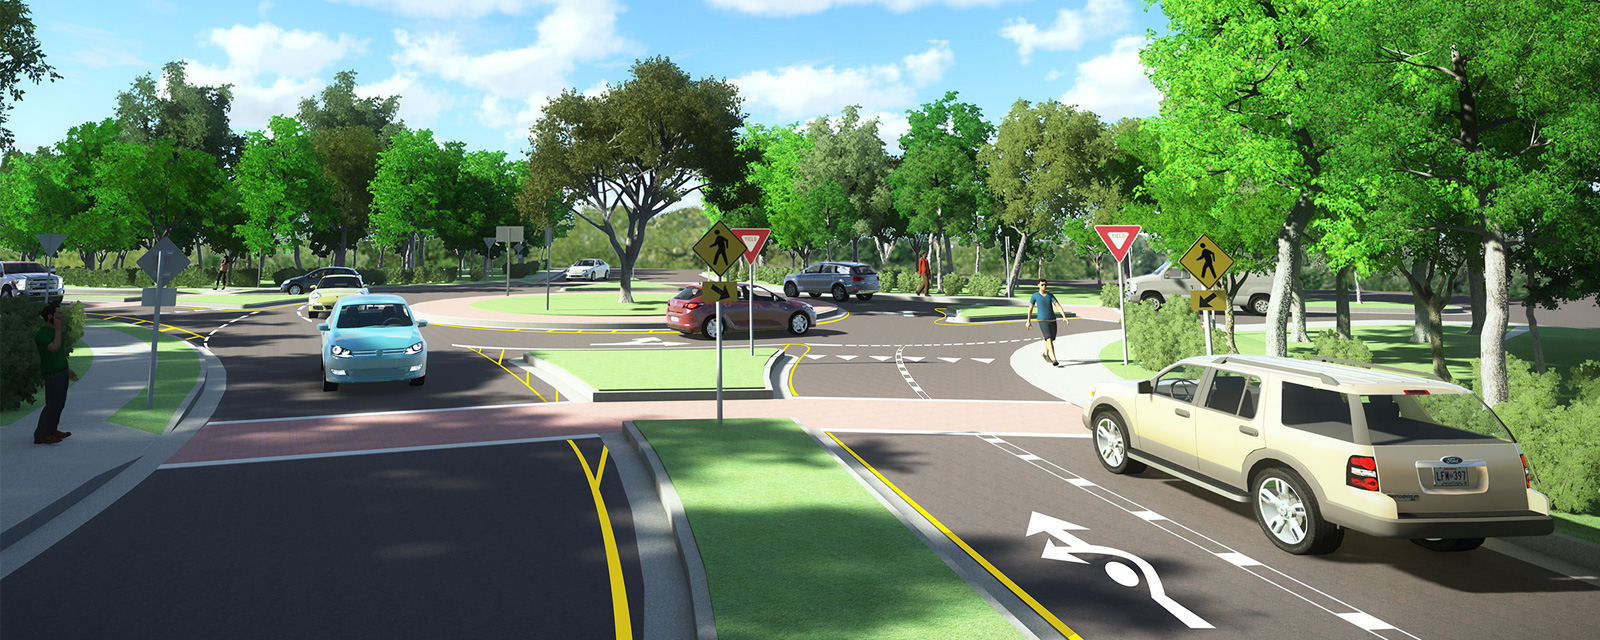 3b Drmp Inc Visualization Kinhega Roundabout 1600x640